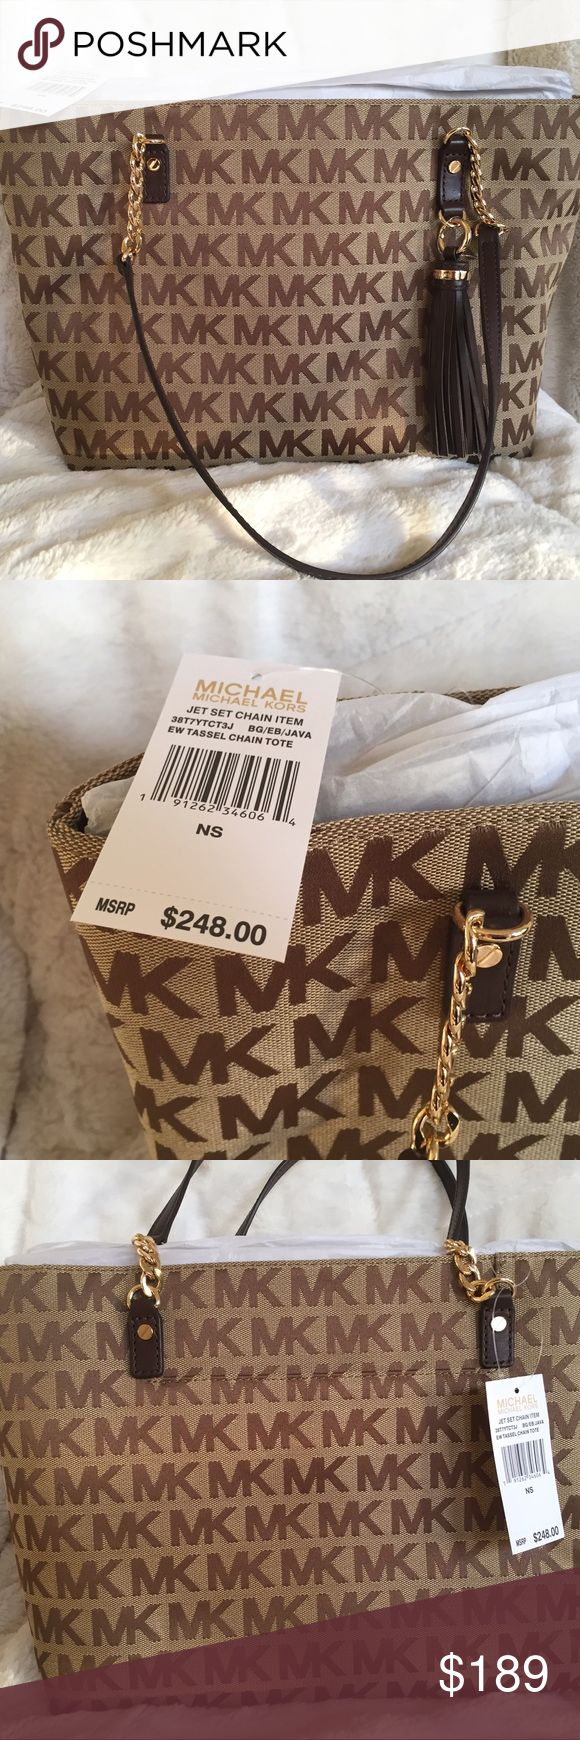 "TODAY ONLY Michael Kors Jet Set NWT MSRP 248.00. This is a NWT bag, retails for 248.00. Has a zippered closure and features a back pocket on the outside. Large leather tassel and leather accented straps with chains. Has zippered pocket inside and pouches for cell phone. 15""L (top) 12""L (bottom) 10""H x 5""W. Strap drop 11"". Michael Kors Bags Shoulder Bags"